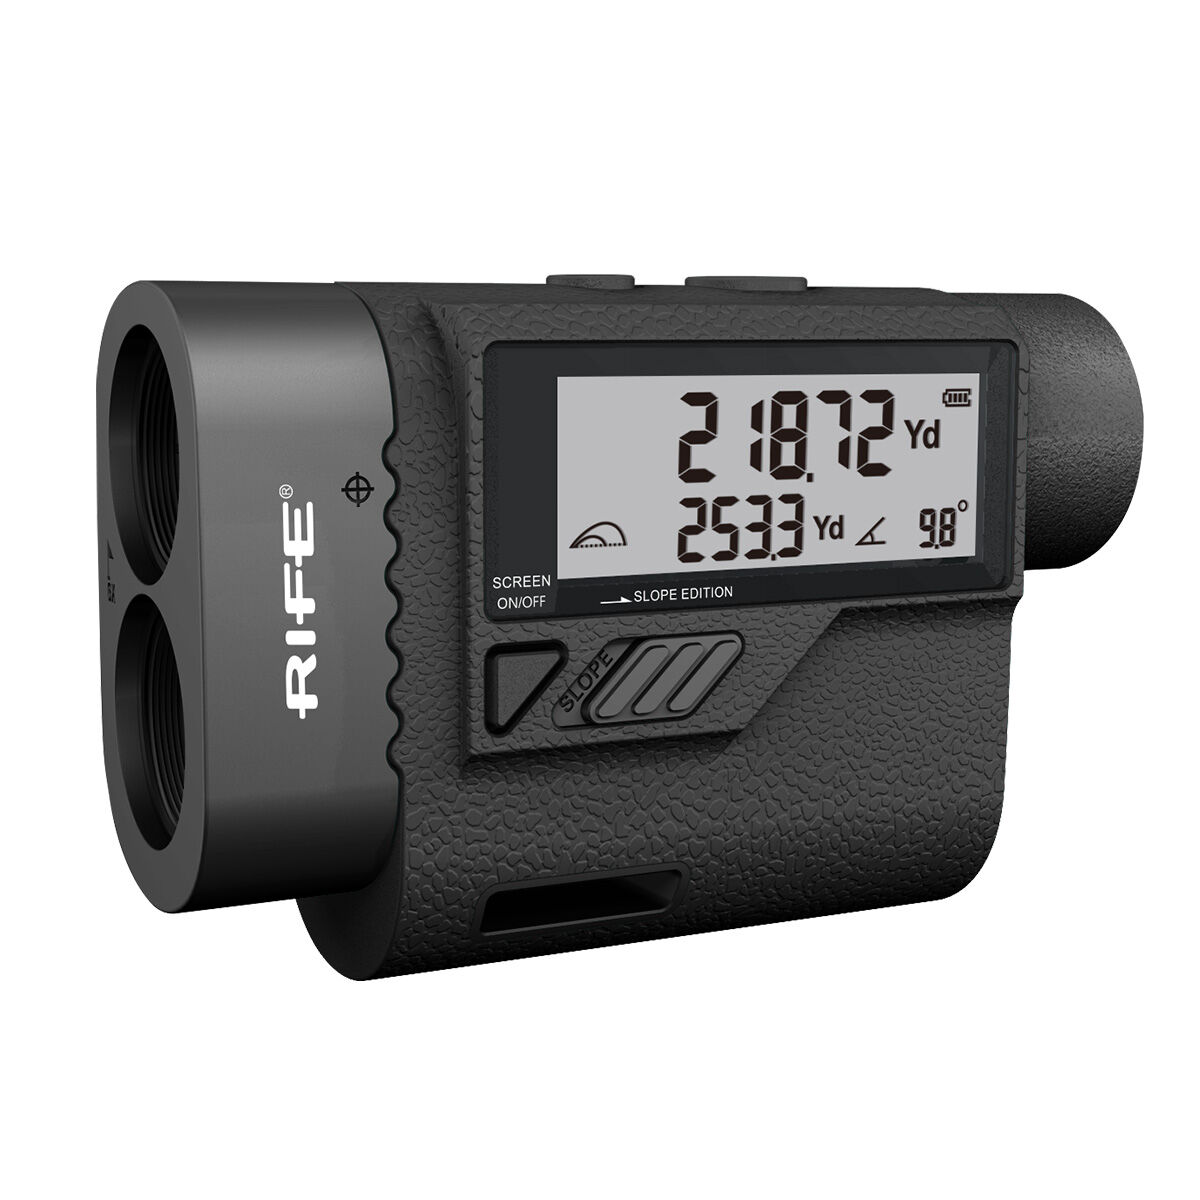 Rife Black RX5 Deluxe Golf Rangefinder with an LCD Display